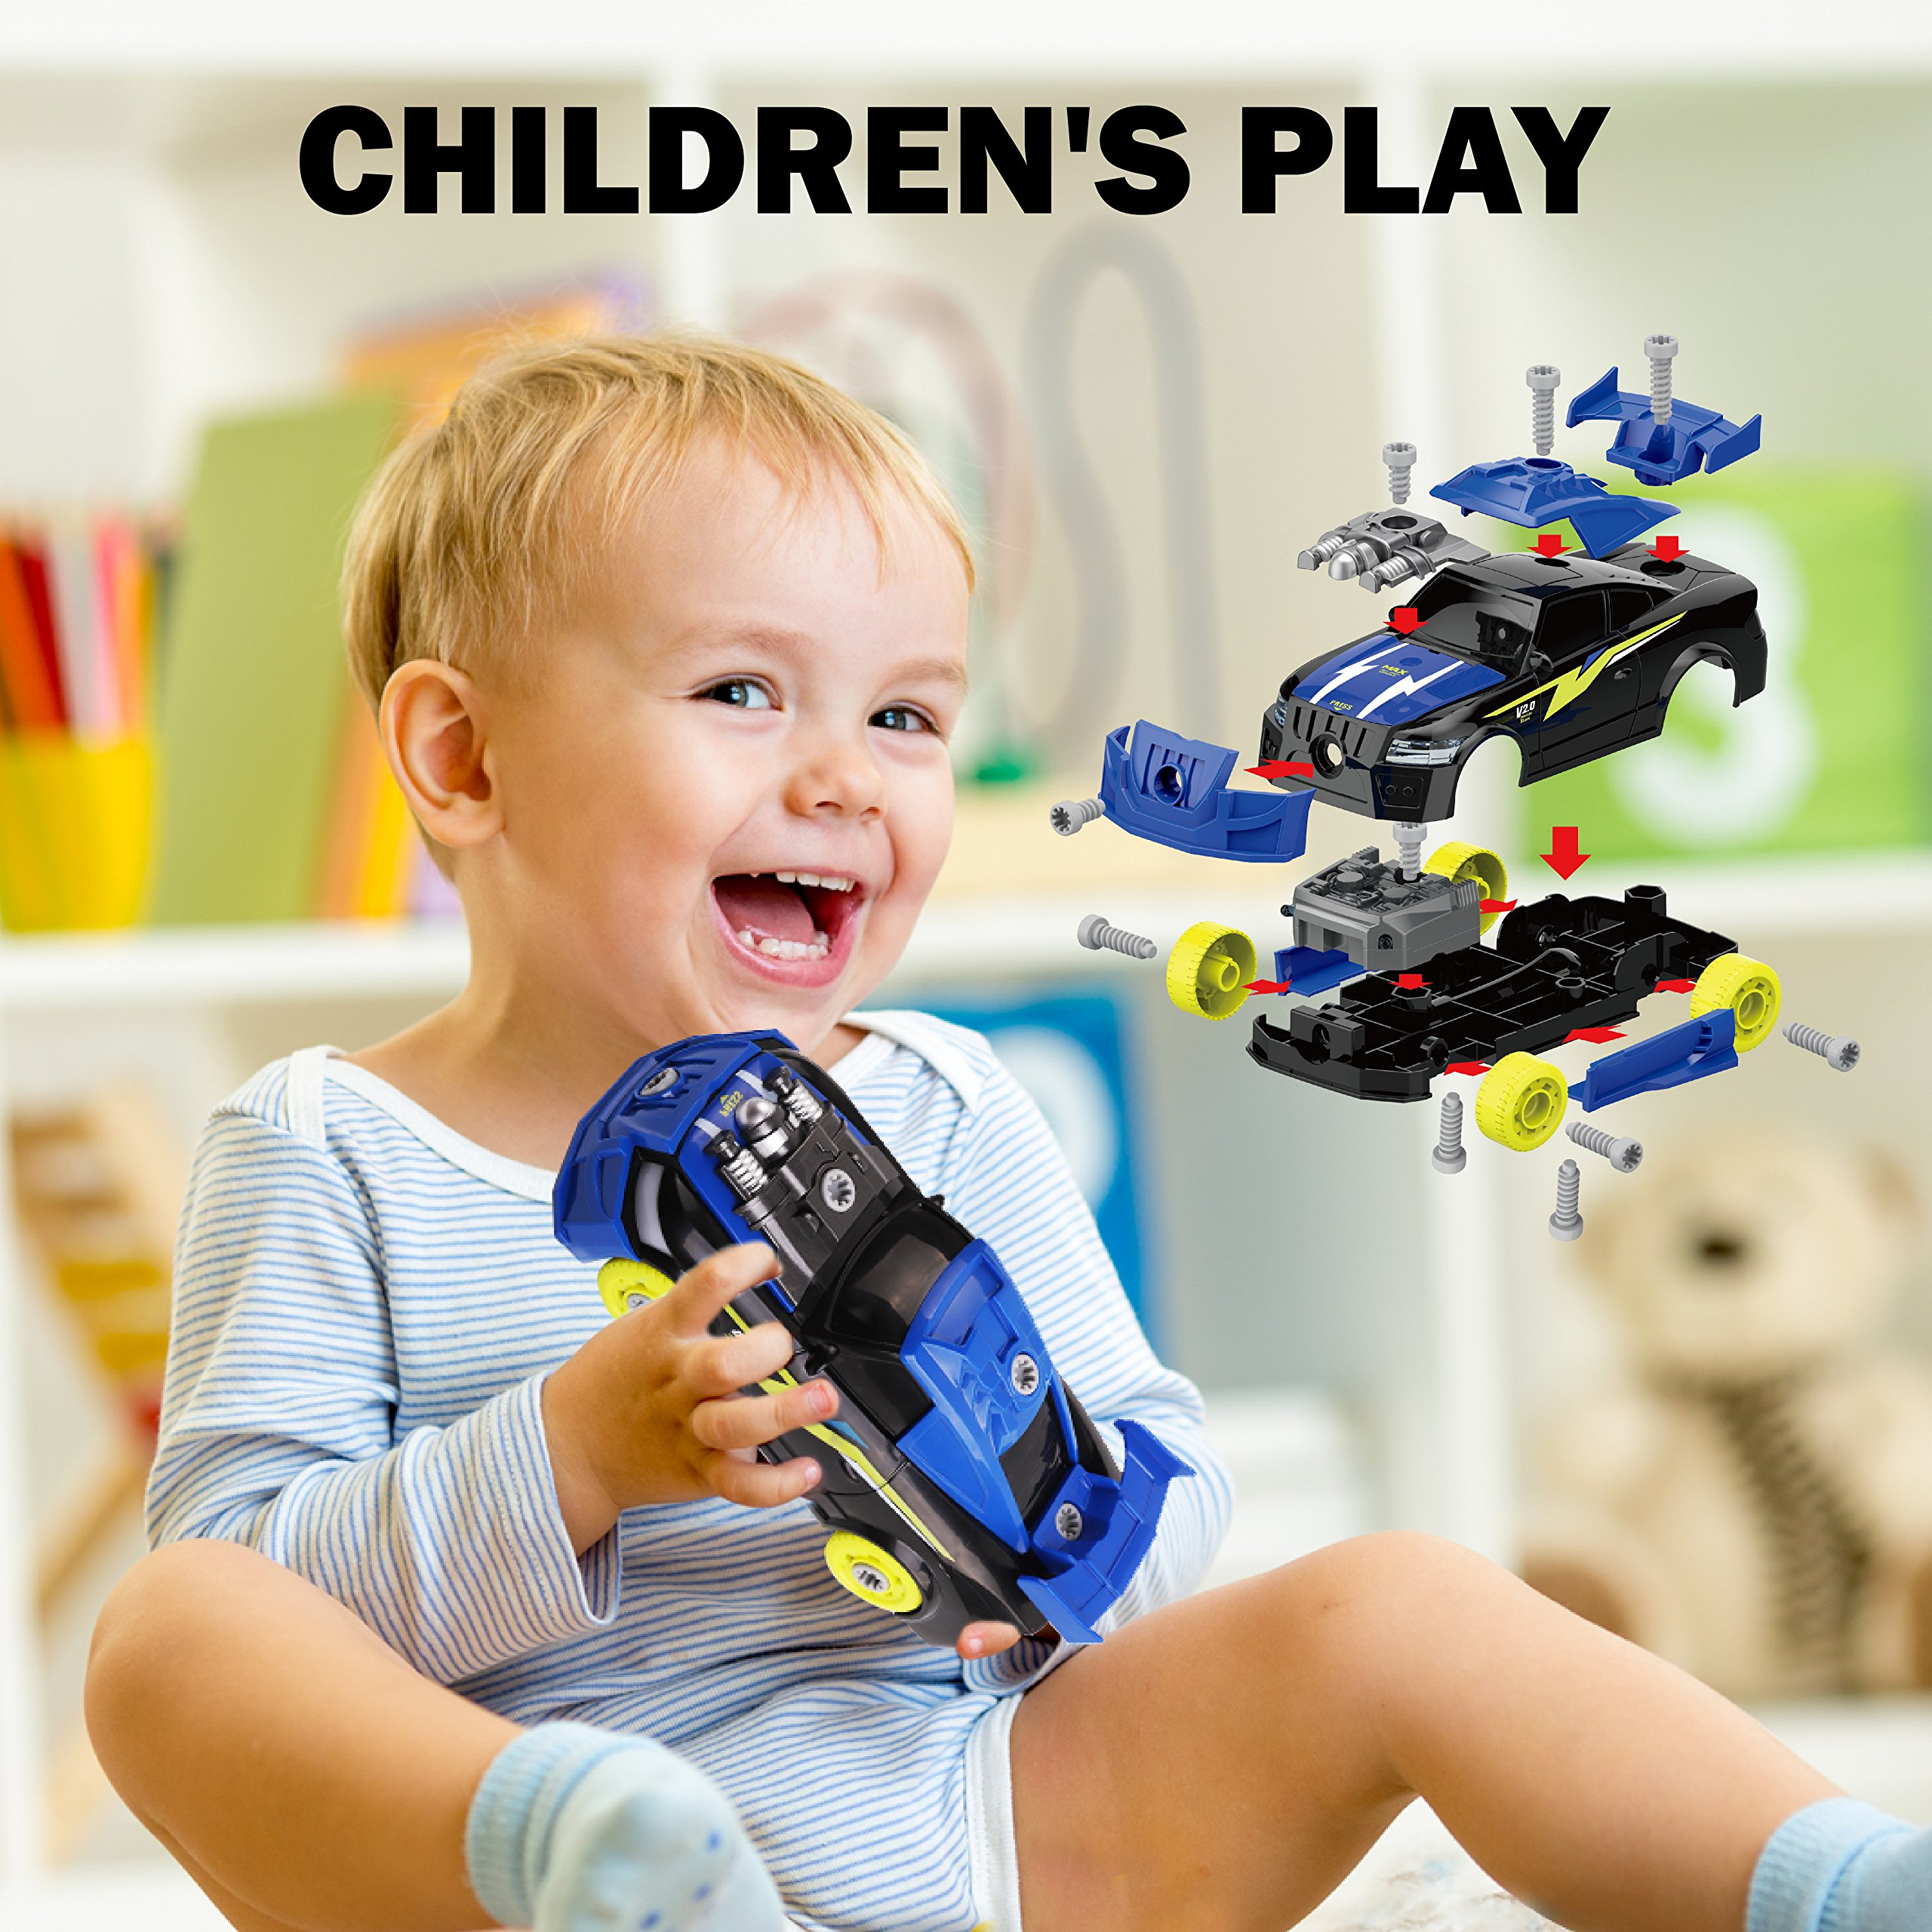 Maxxrace Take Apart Racing Car, STEM Toys 26 Pieces Assembly Car Toys with Drill Tool, Lights and Sounds, Gifts for Kids Aged 3+ by Maxxrace (Image #7)